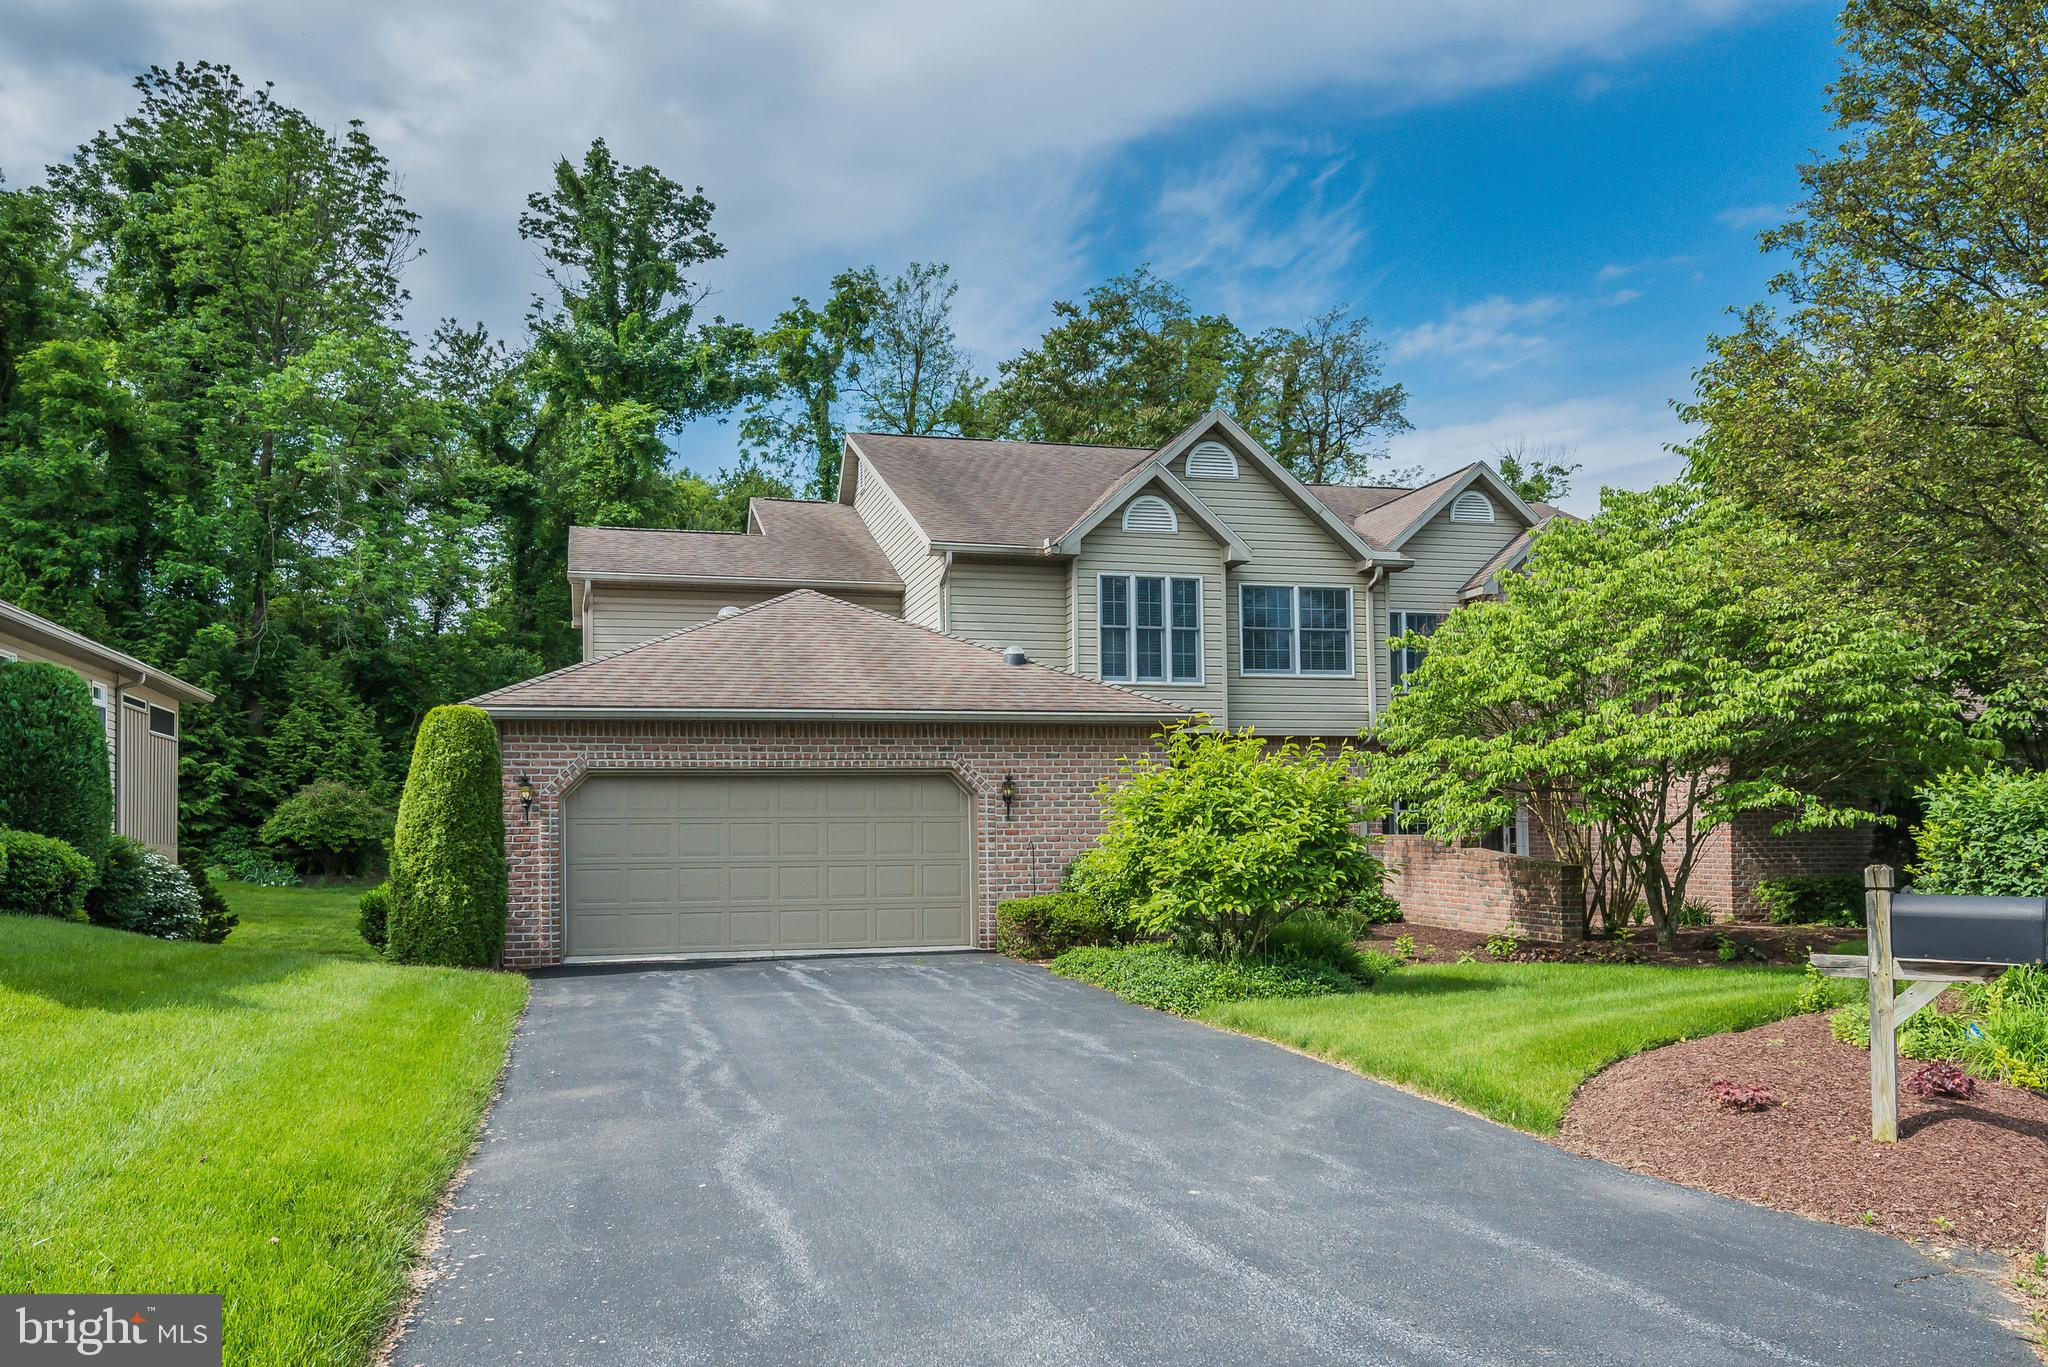 14 CRAIN CIRCLE, LEMOYNE, PA 17043